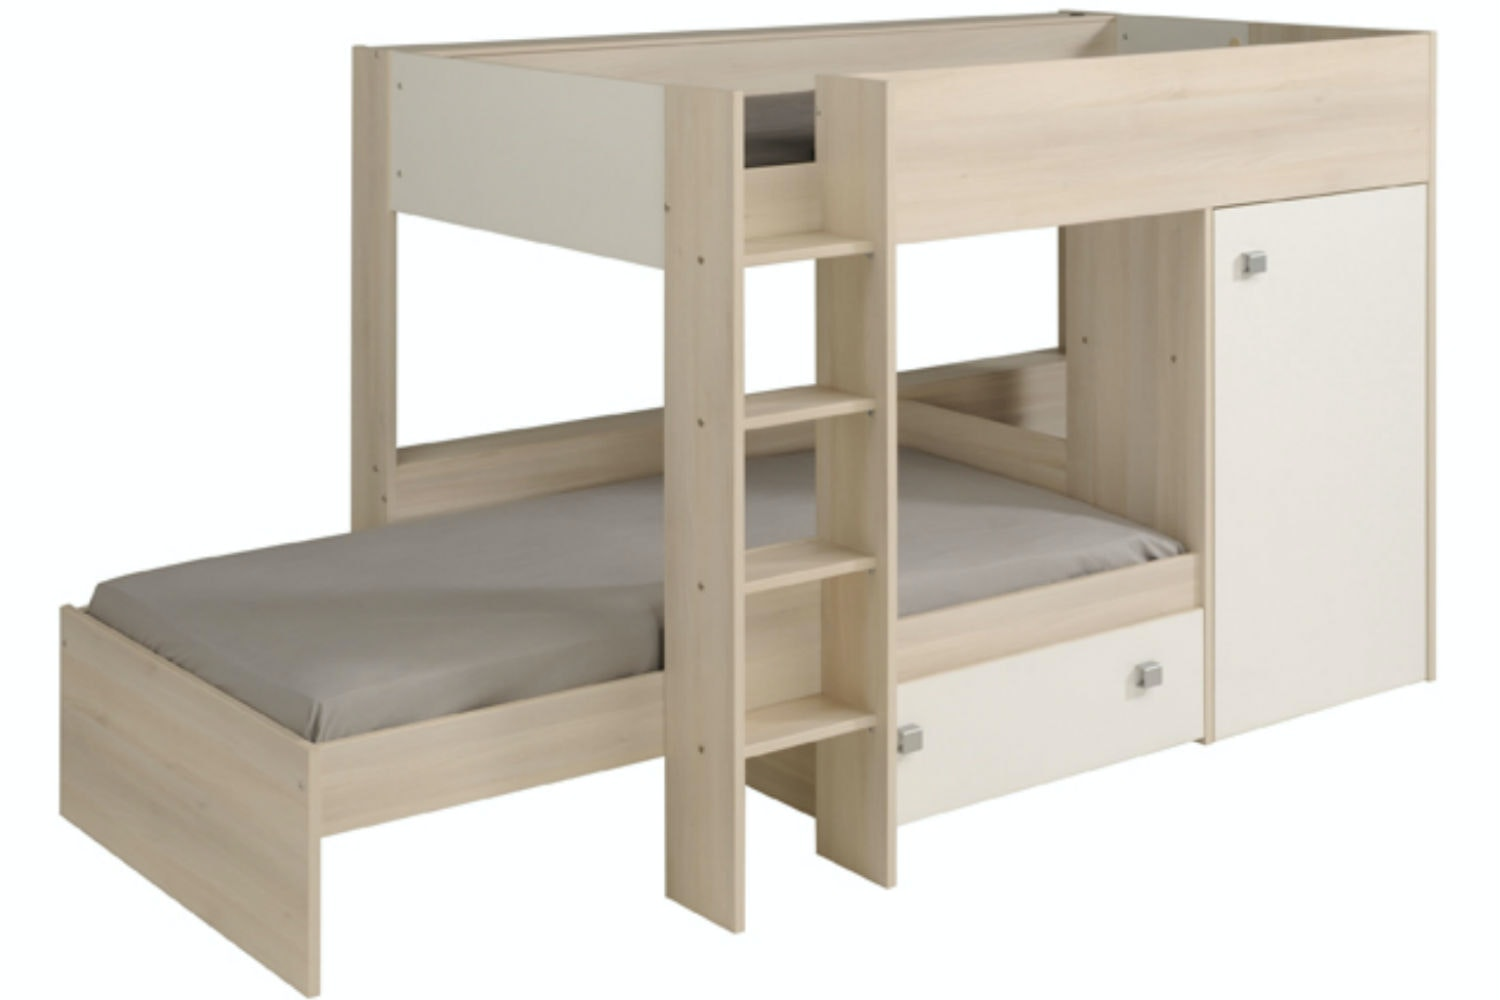 Charlie '90' Bunk Bed | 3ft | White